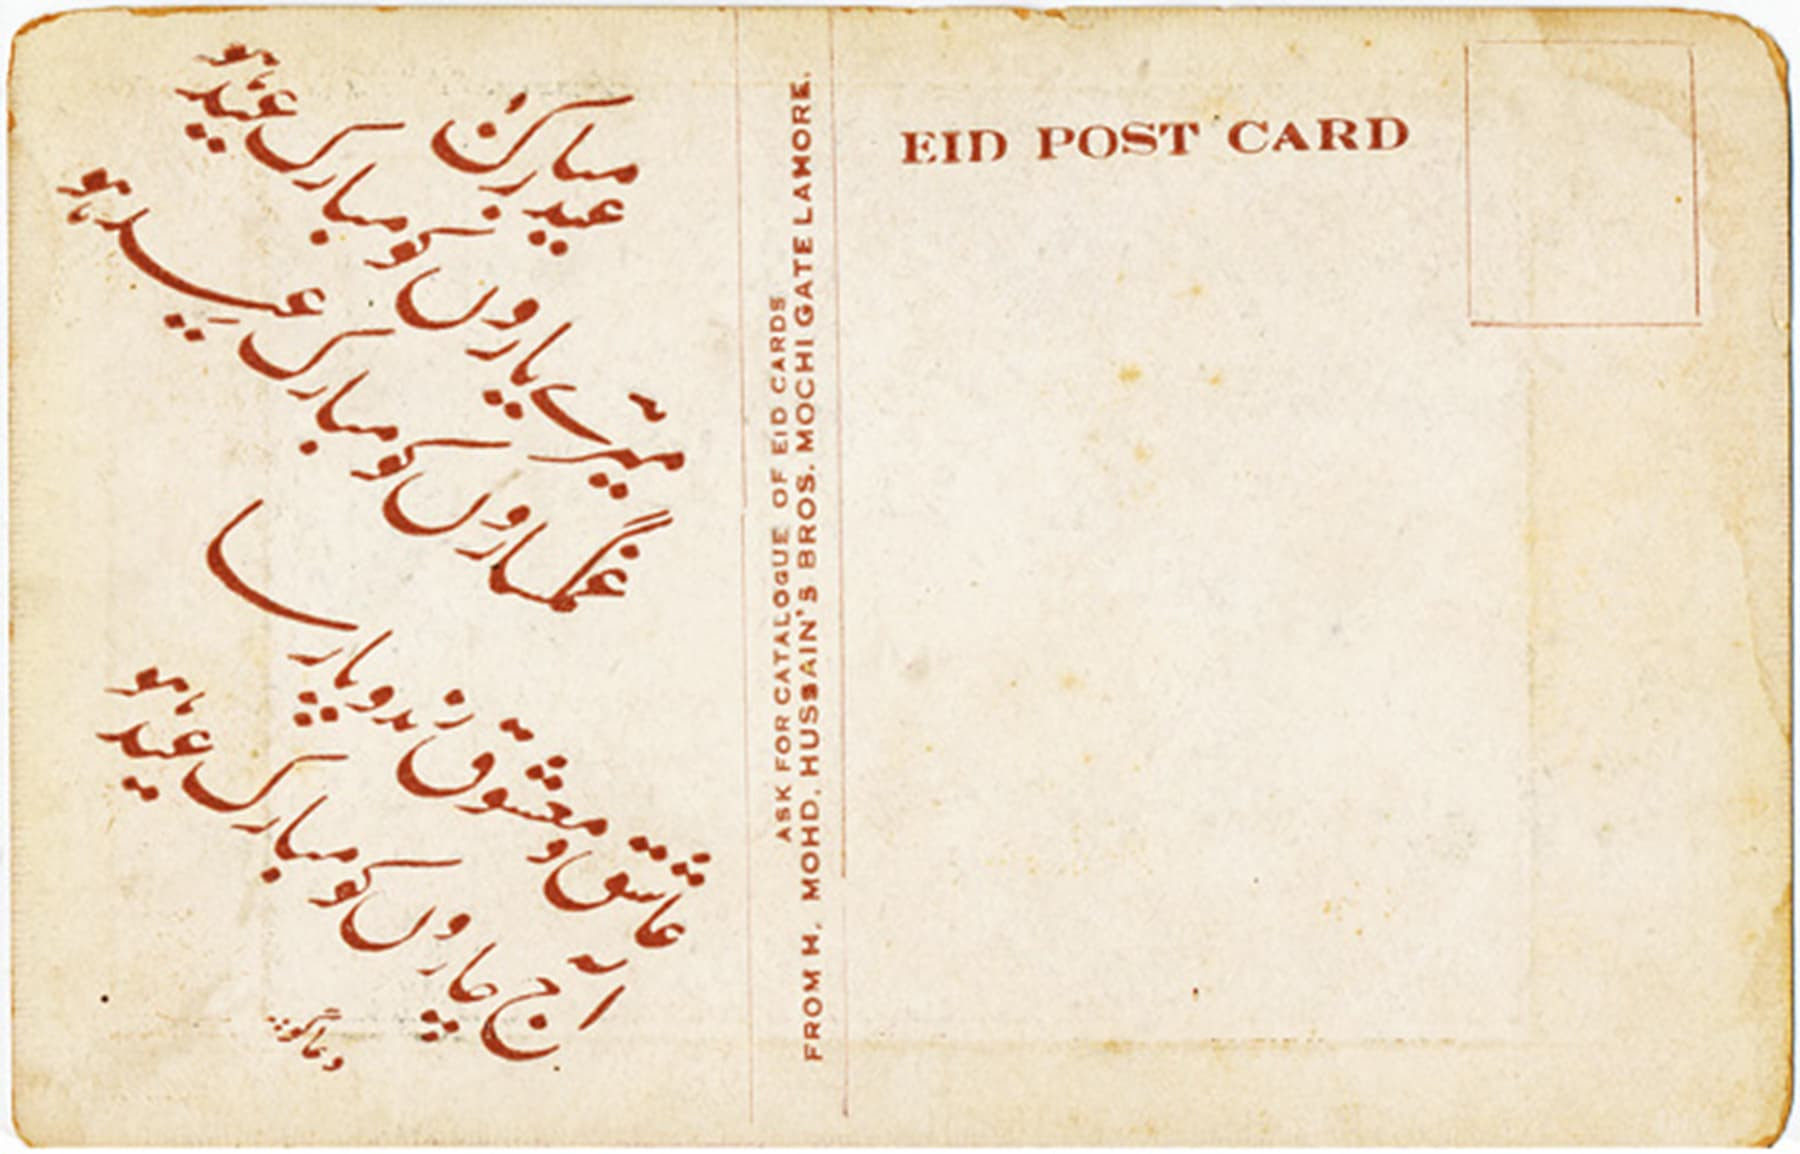 The Lost Art Of Eid Greeting Cards Dawncom